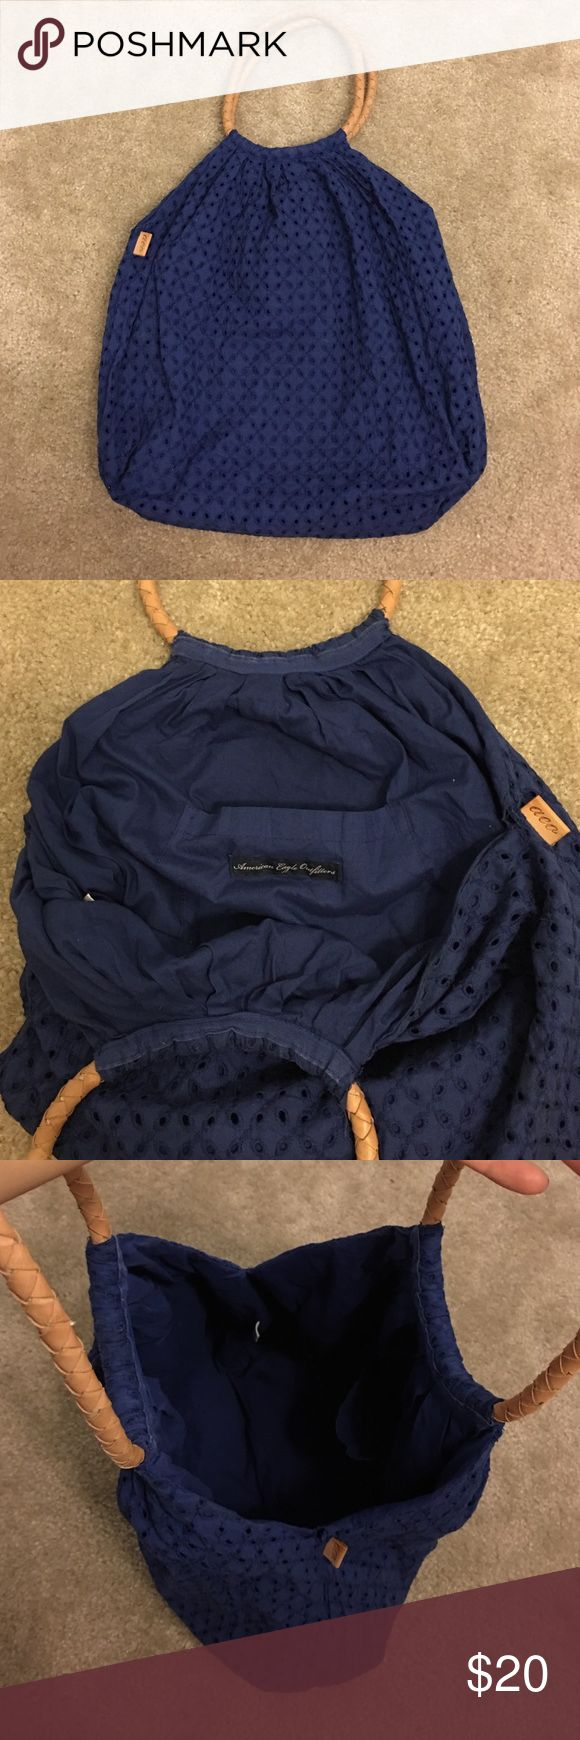 American Eagle tote bag Gently used condition, cute and roomy tote bag. American Eagle Outfitters Bags Totes